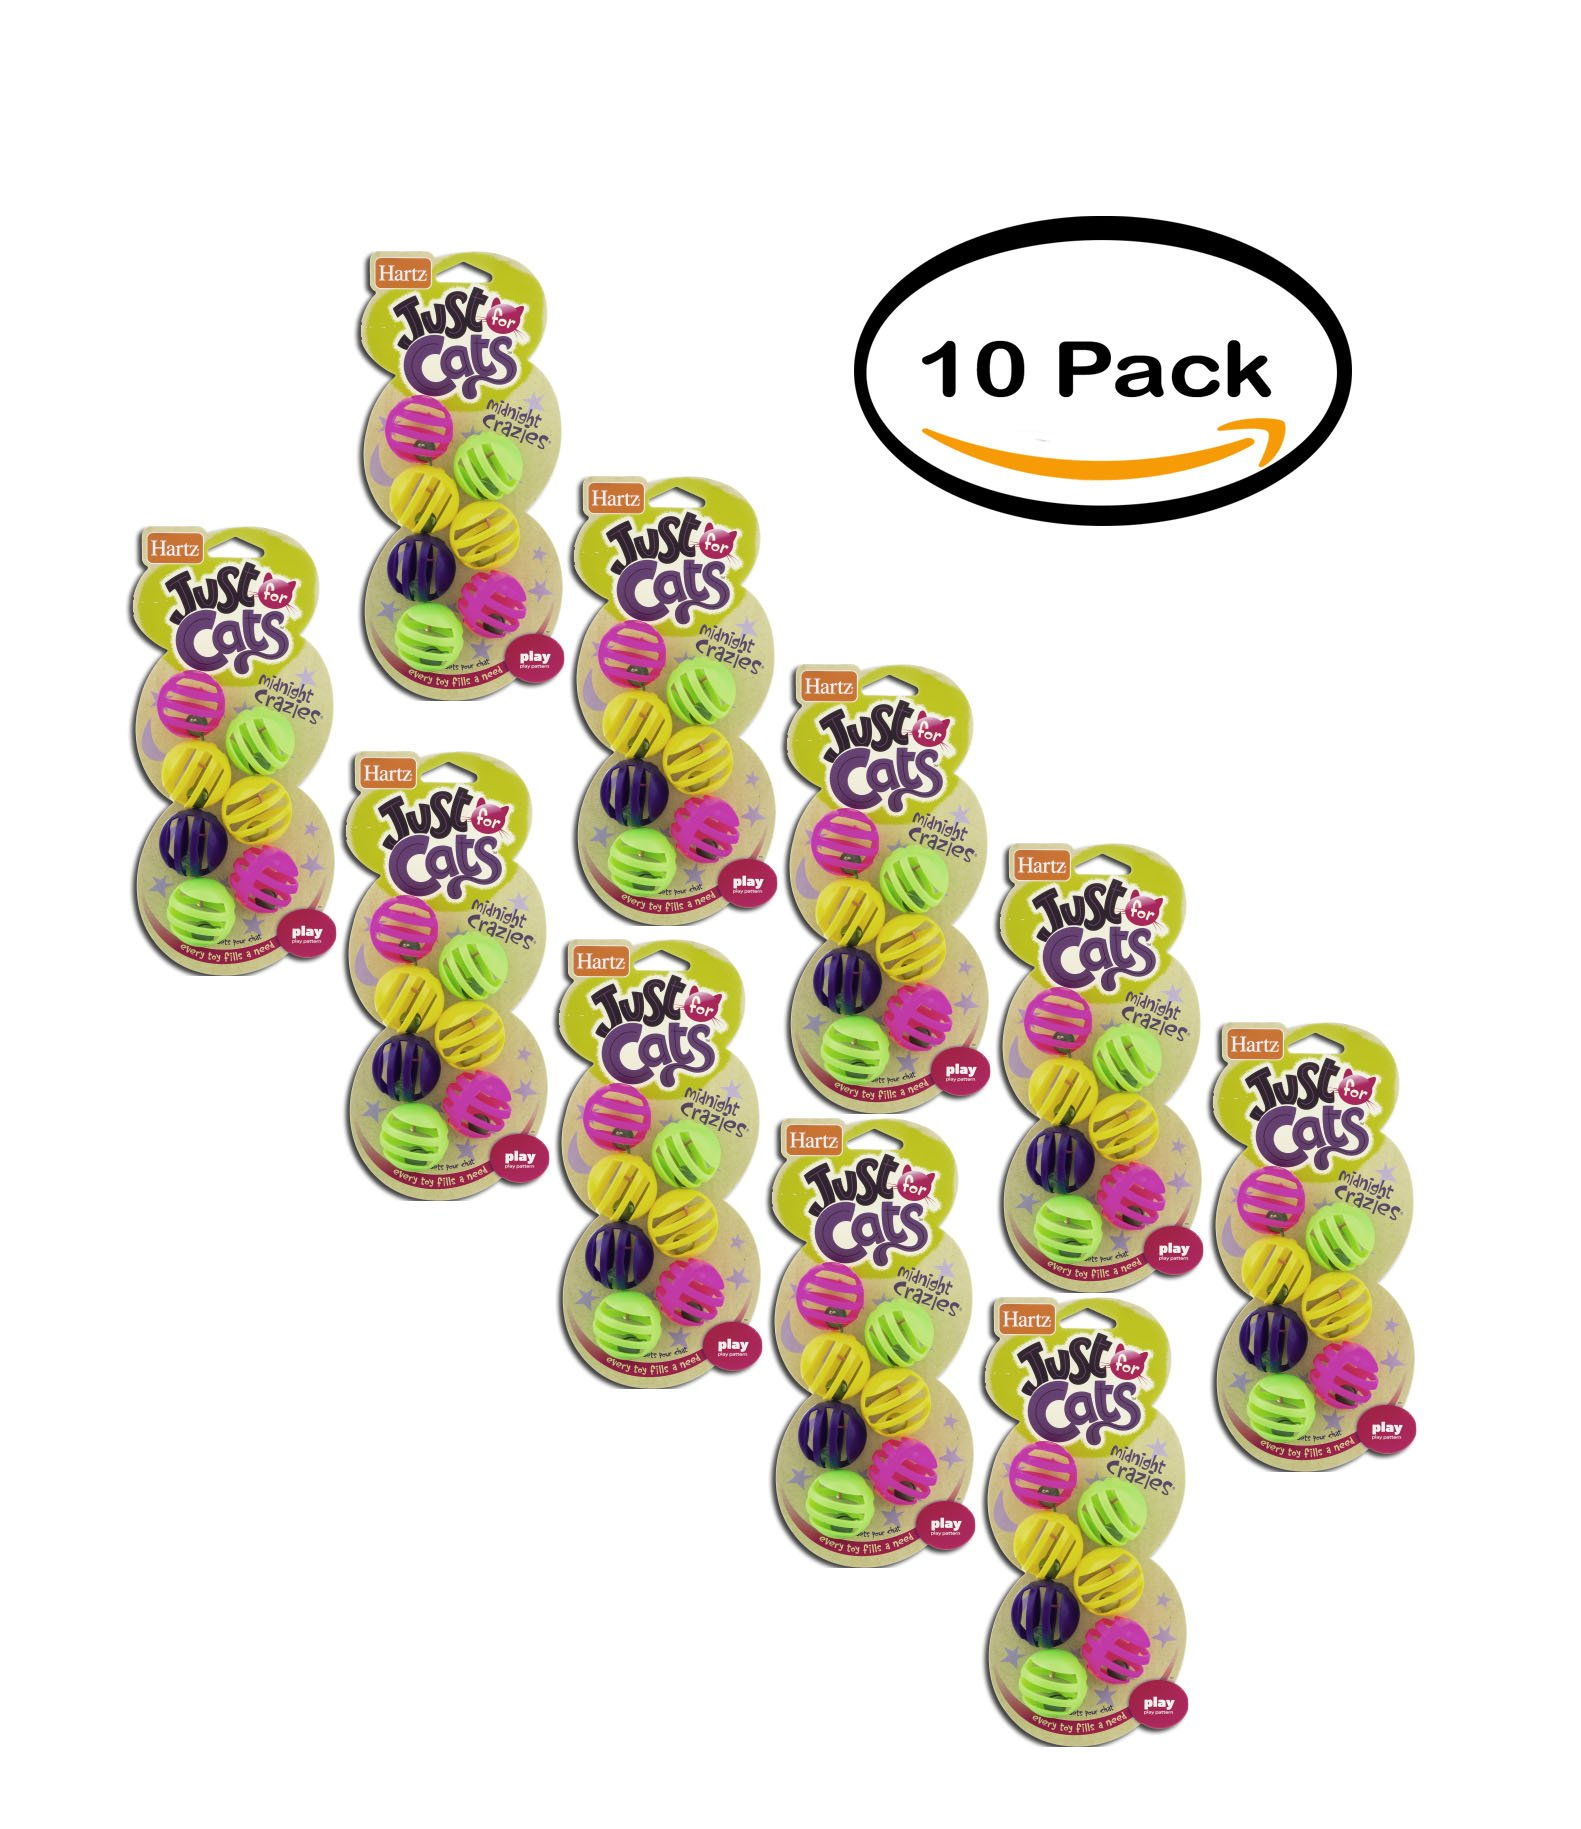 PACK OF 10 - Hartz Just for Cats Midnight Crazies Cat Toys - 7 CT